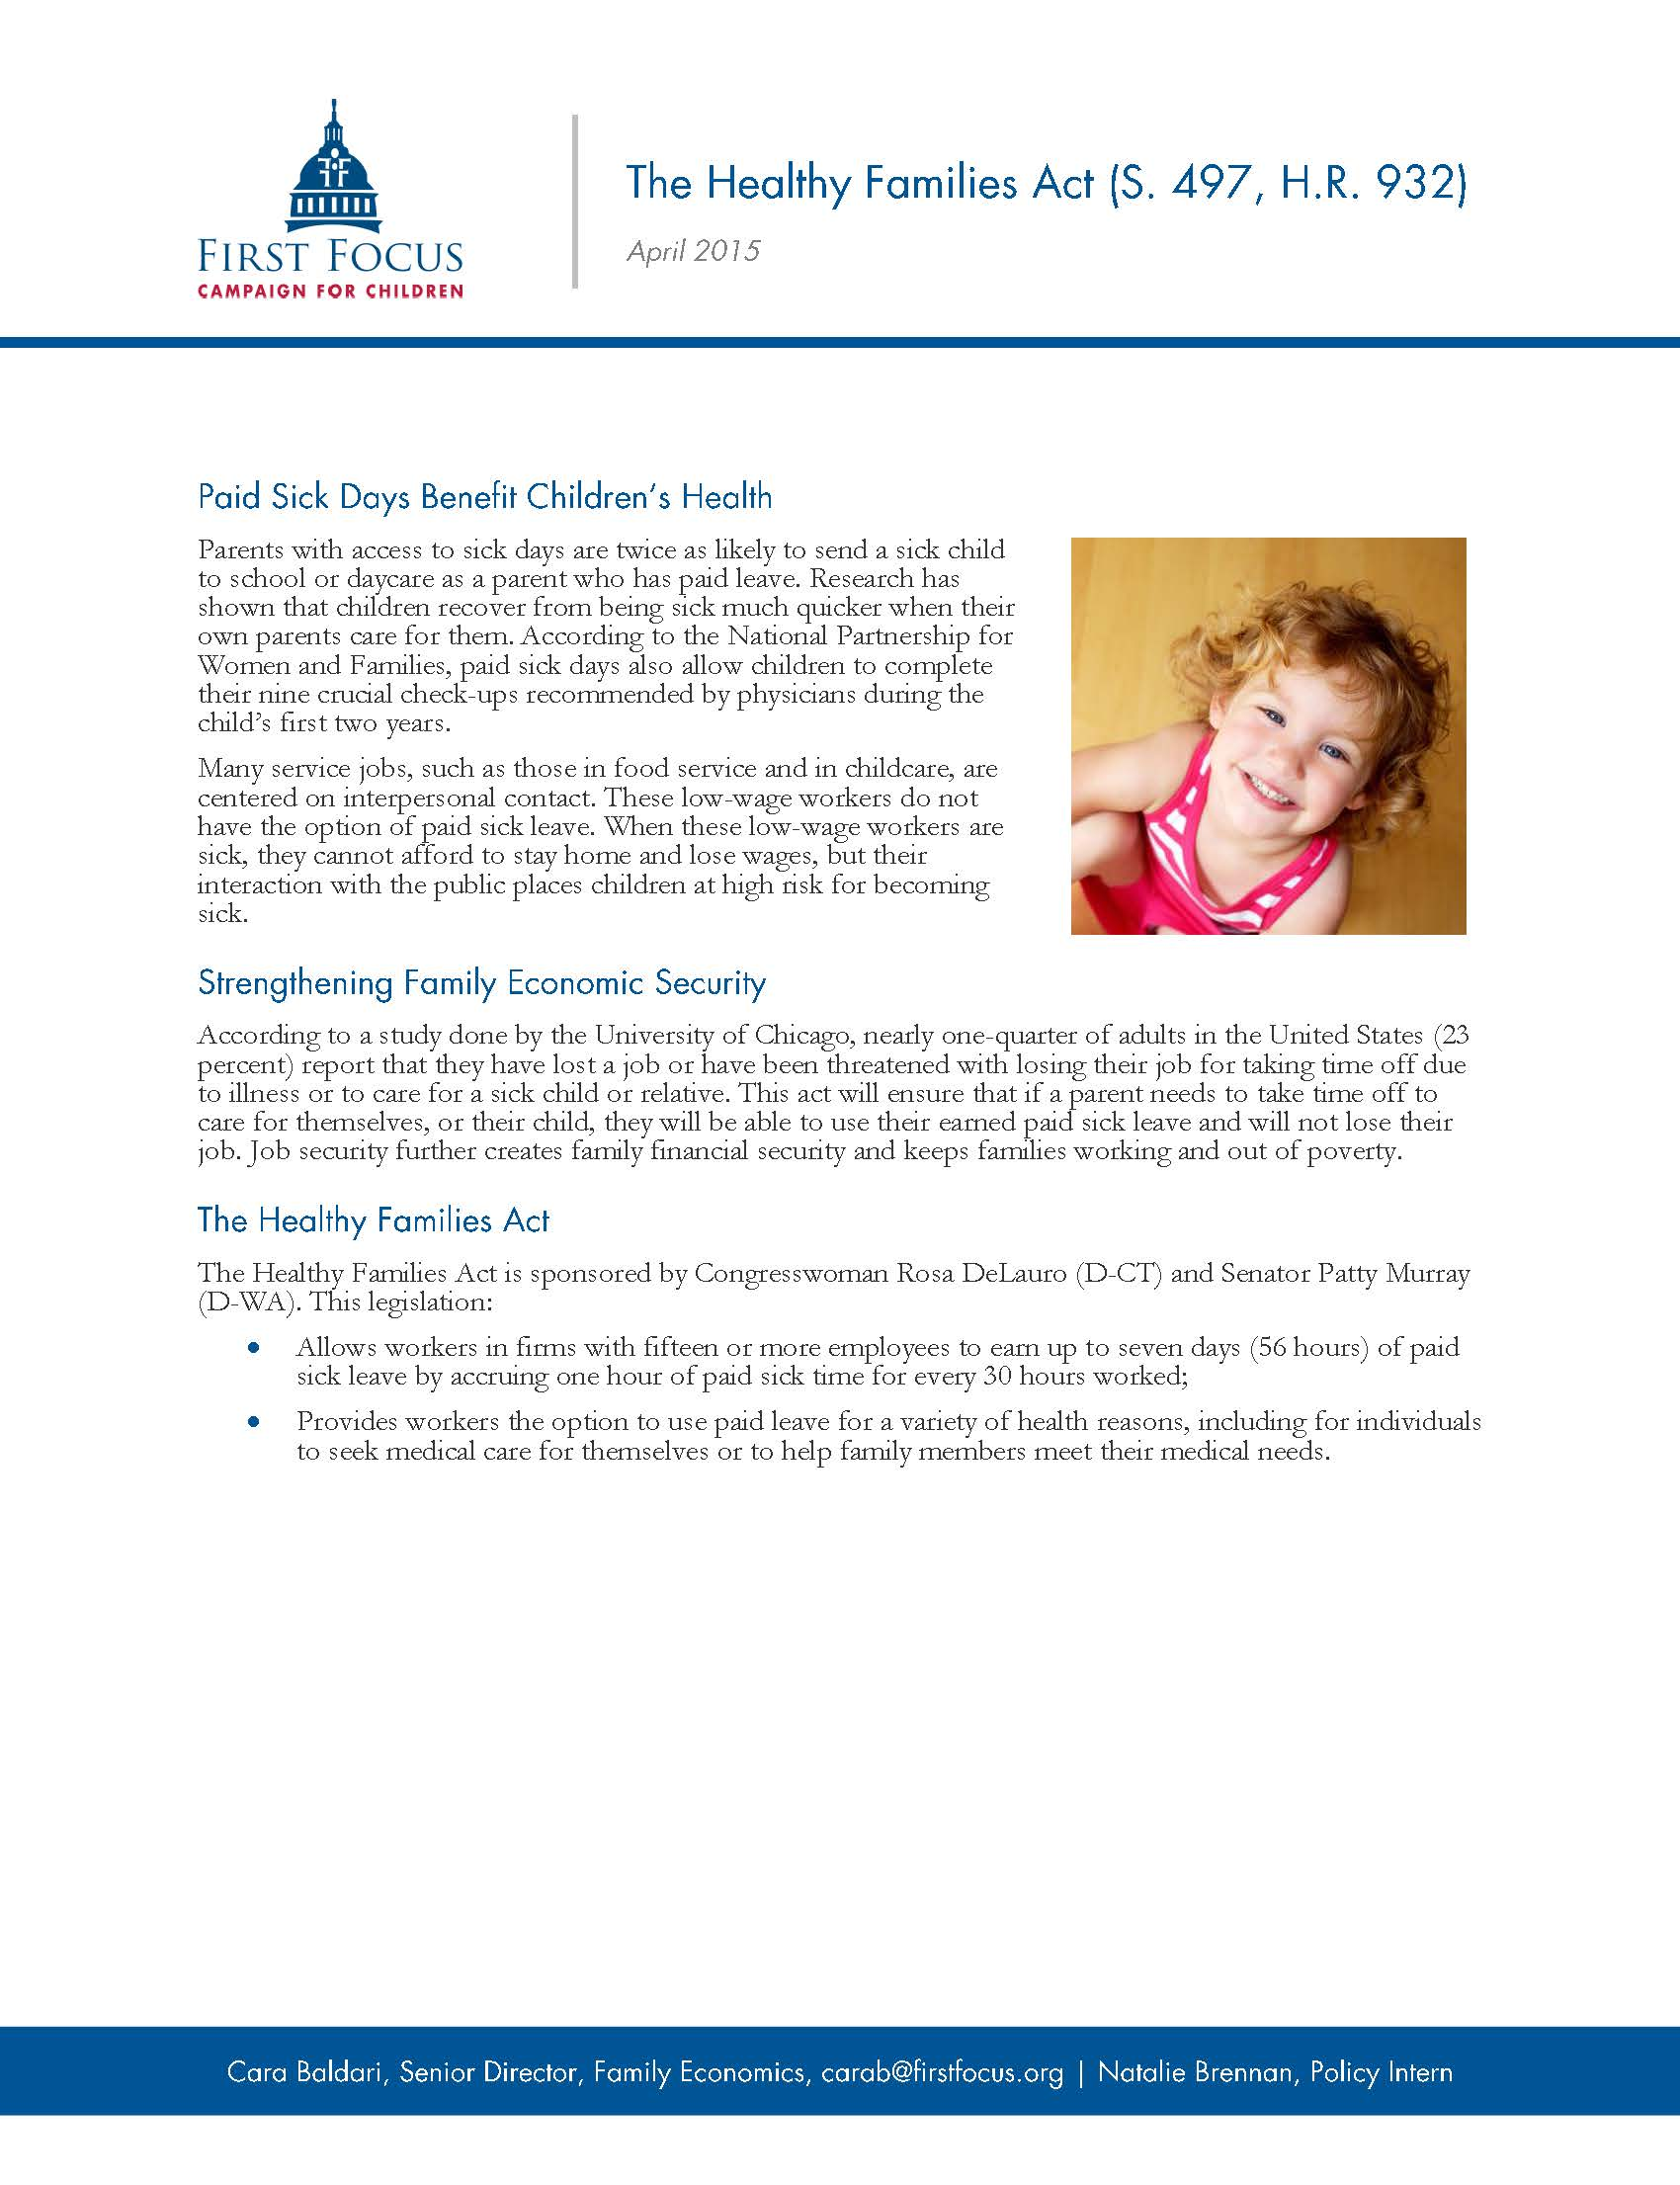 The Healthy Families Act Fact Sheet